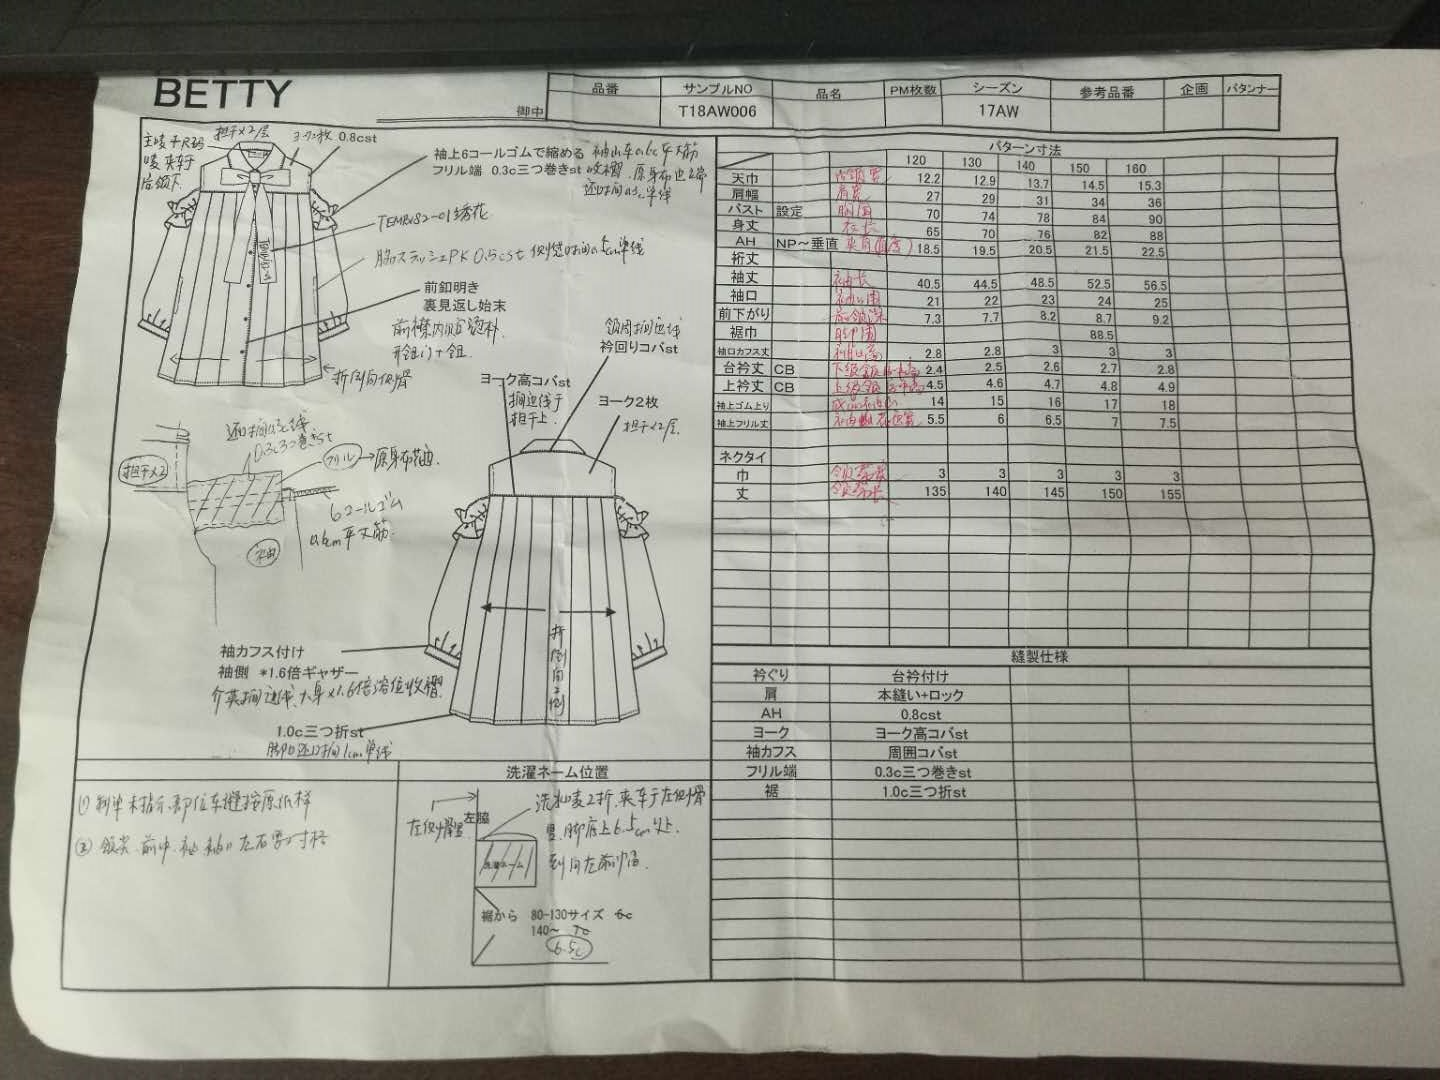 Sketch for clothes manufacturing - Business in Guangzhou